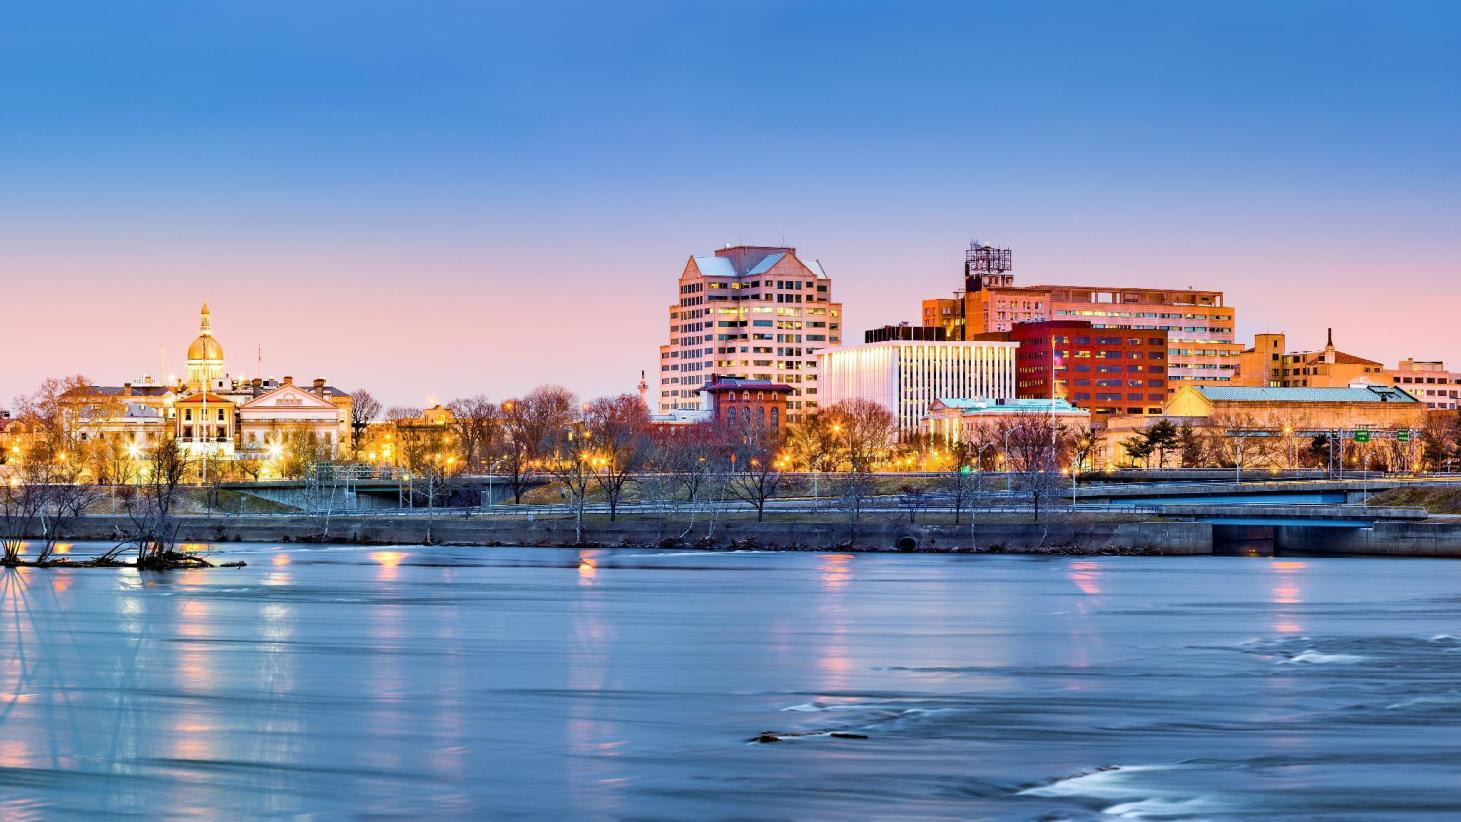 10 Best Trenton (NJ) Hotels: HD Photos + Reviews of Hotels in ...